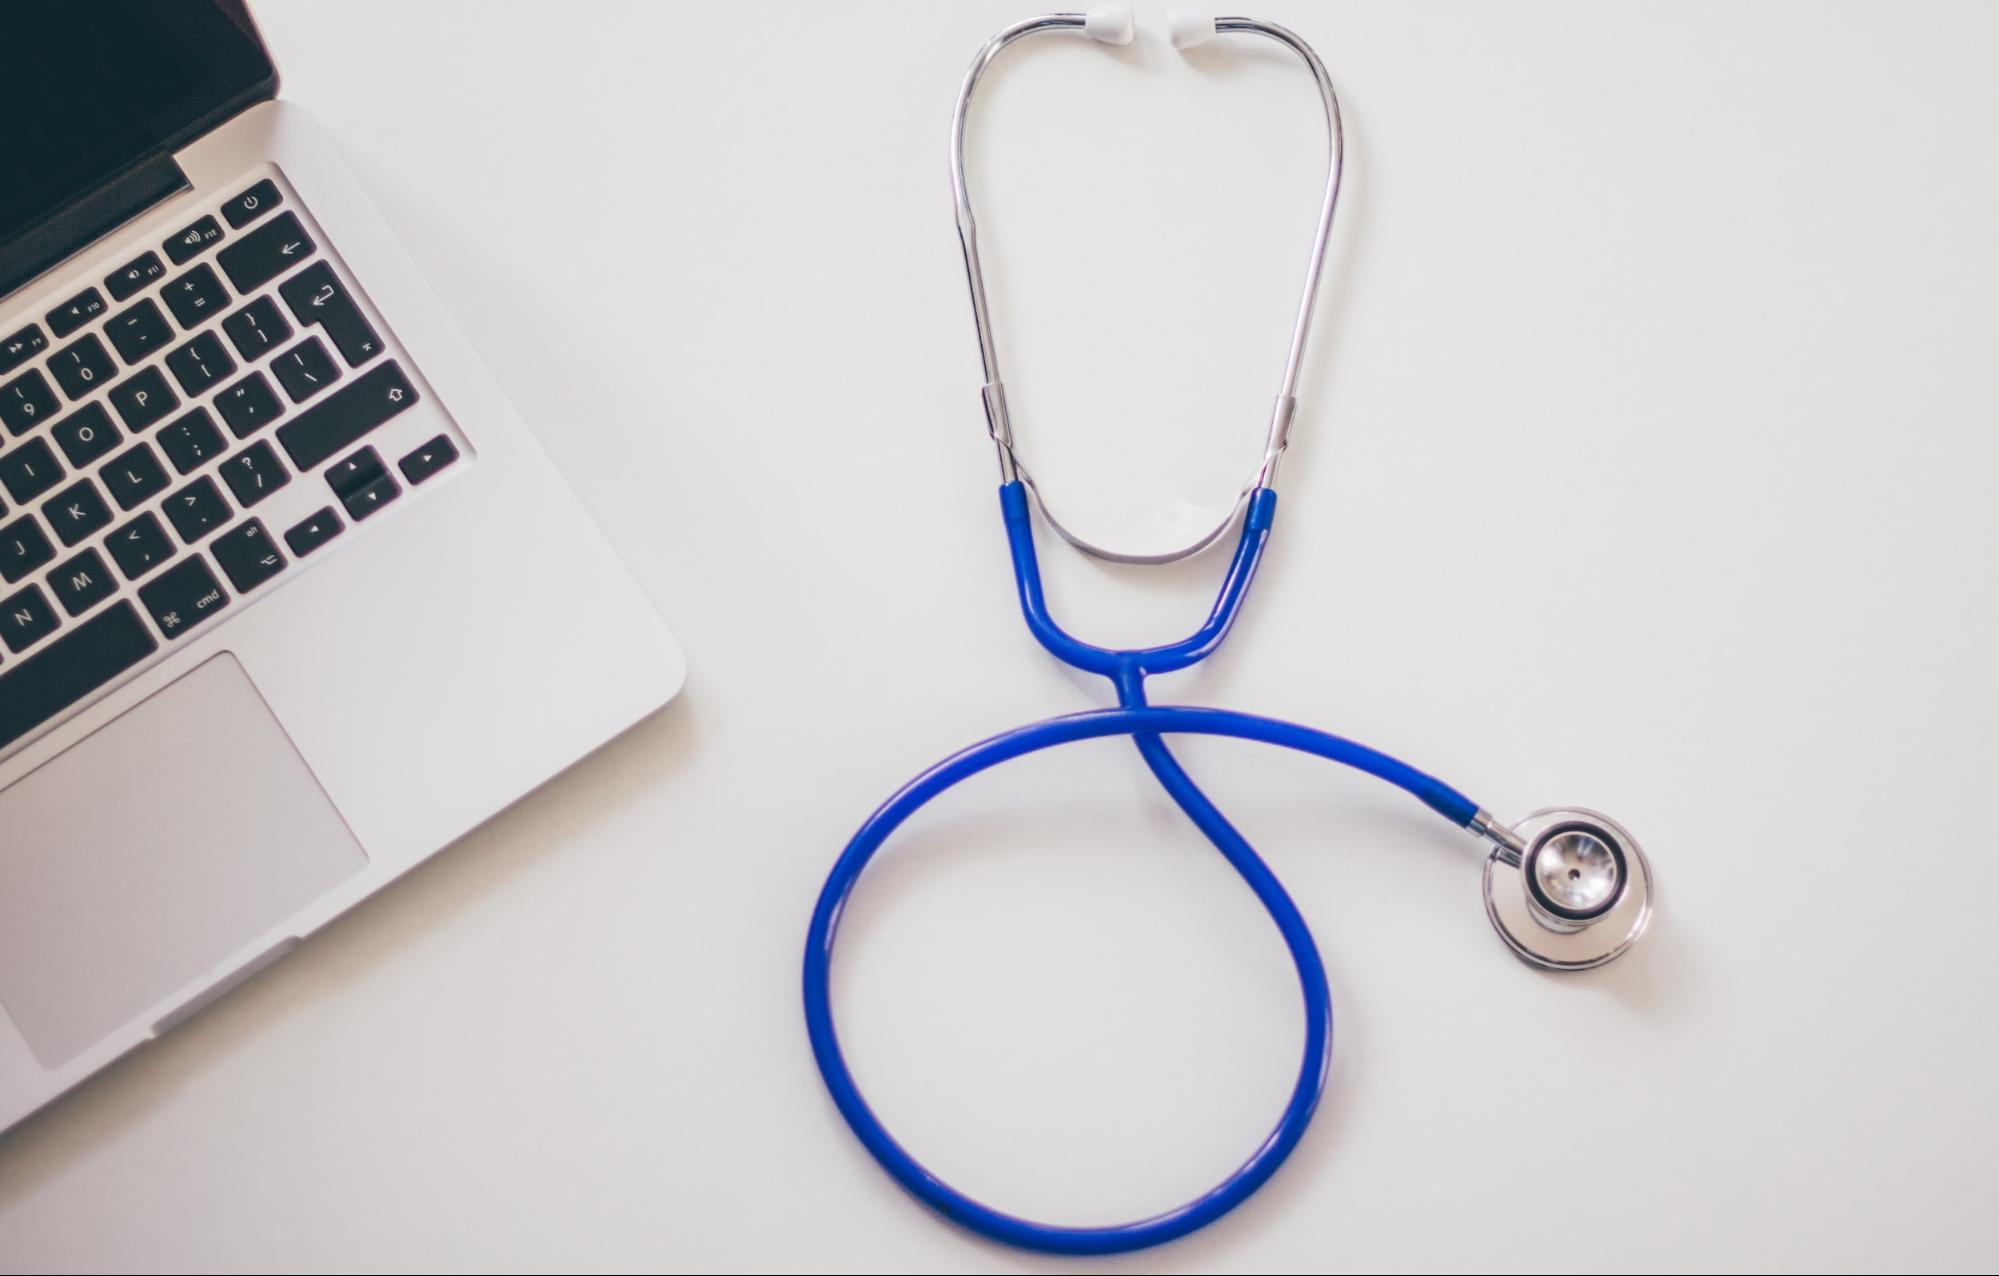 A blue stethoscope on a table next to a laptop